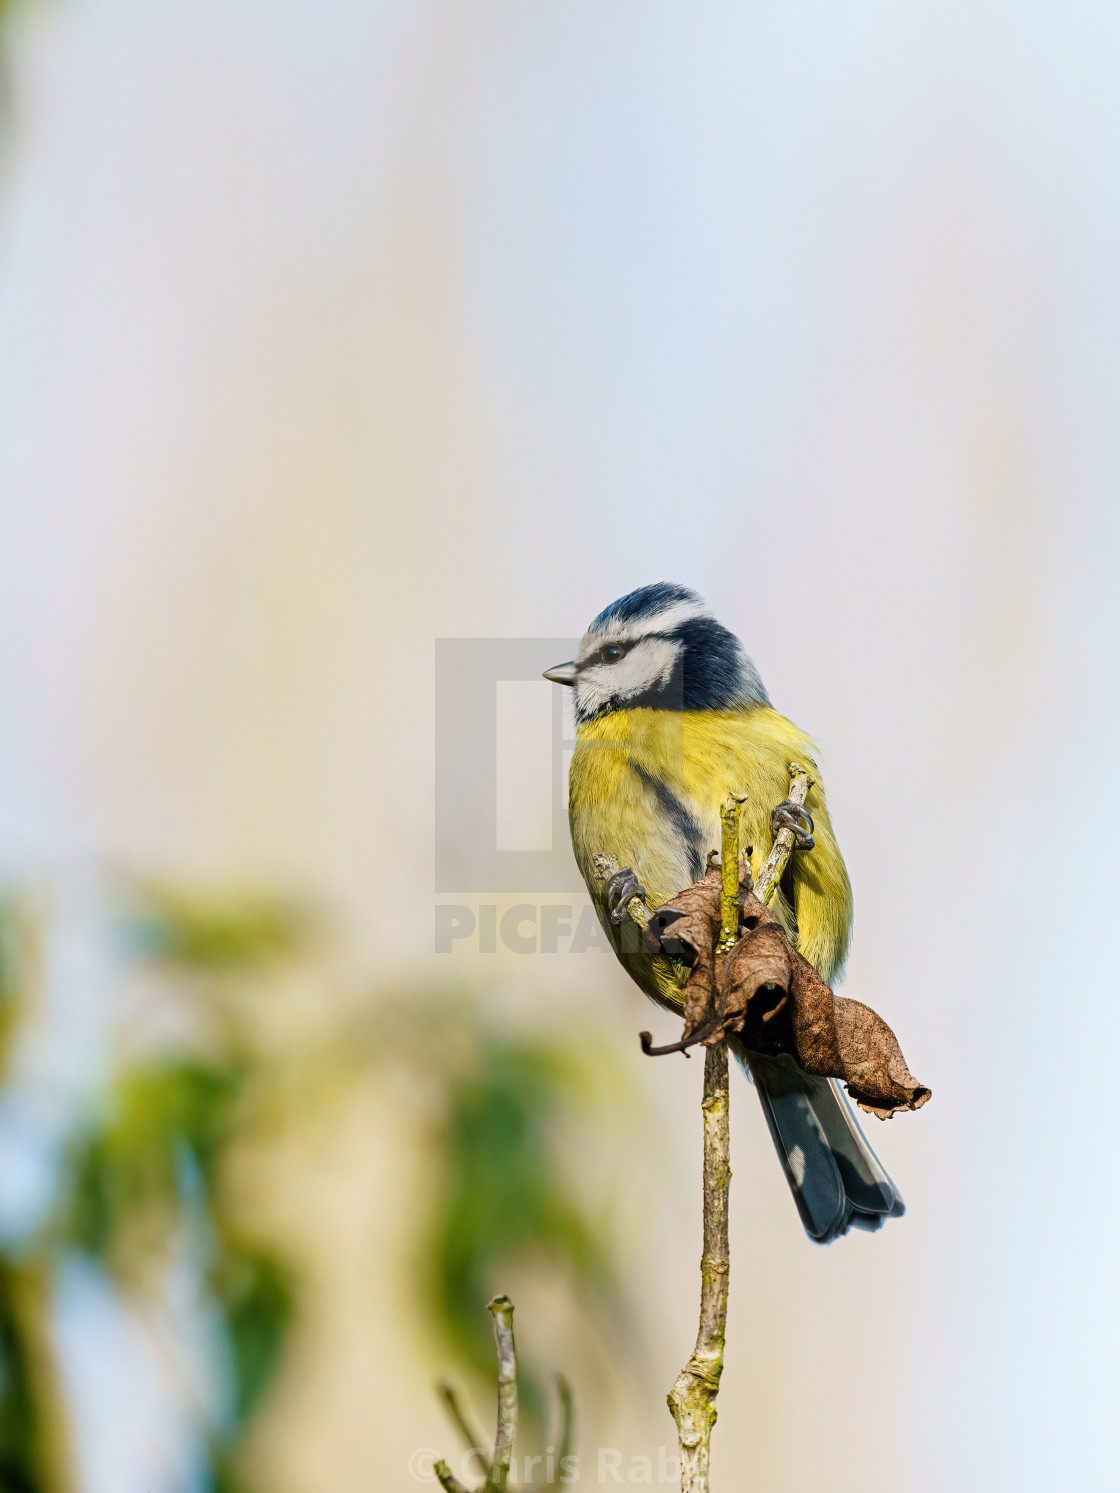 """Blue Tit (Cyanistes caeruleus) sitting on the end of a twig, taken in the UK"" stock image"